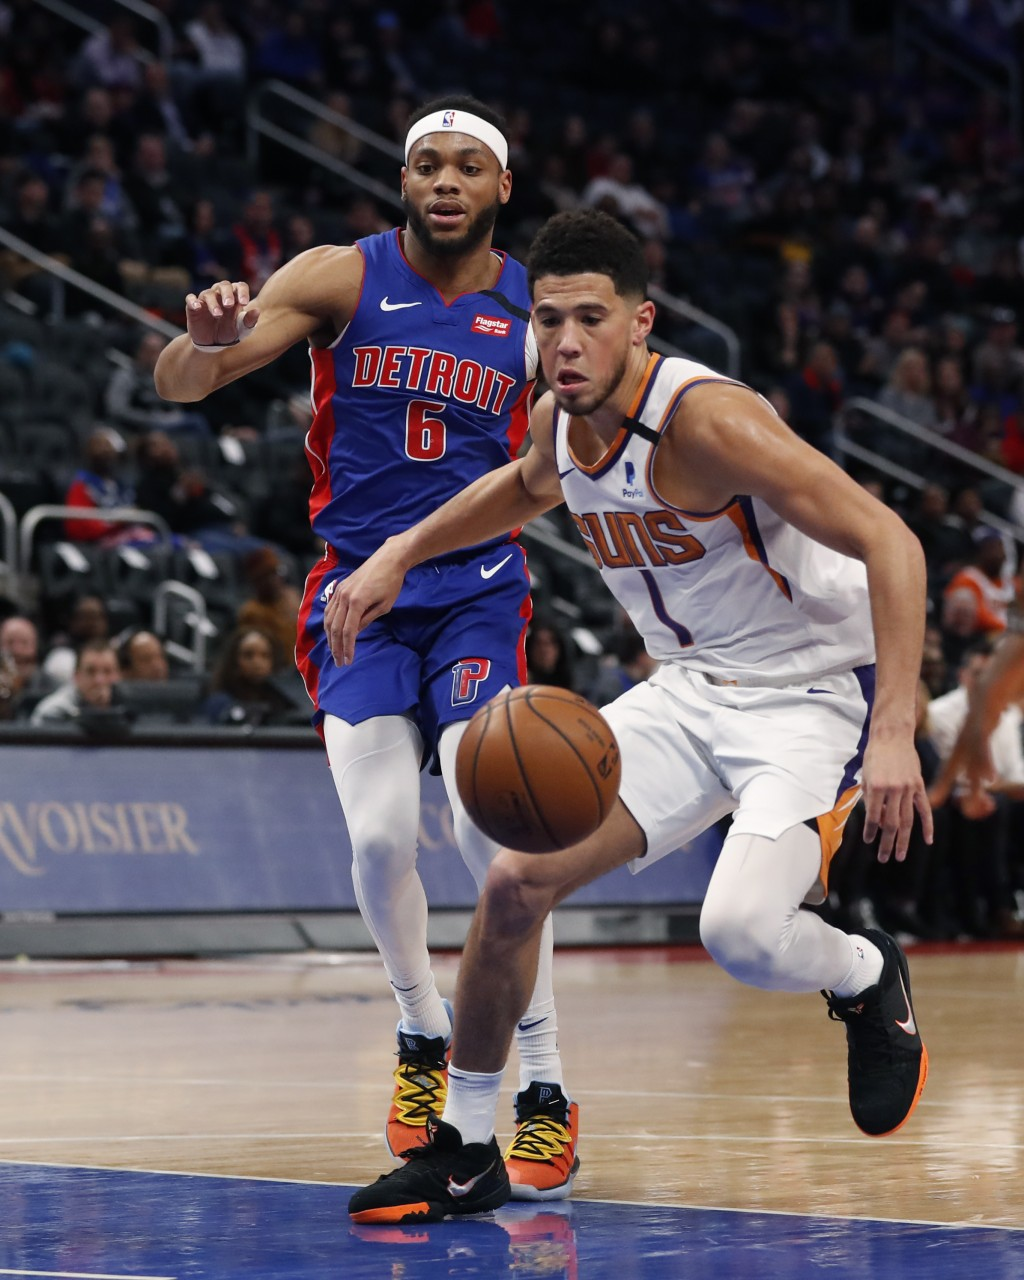 Phoenix Suns guard Devin Booker (1) chases the loose ball next to Detroit Pistons guard Bruce Brown (6) during the first half of an NBA basketball gam...